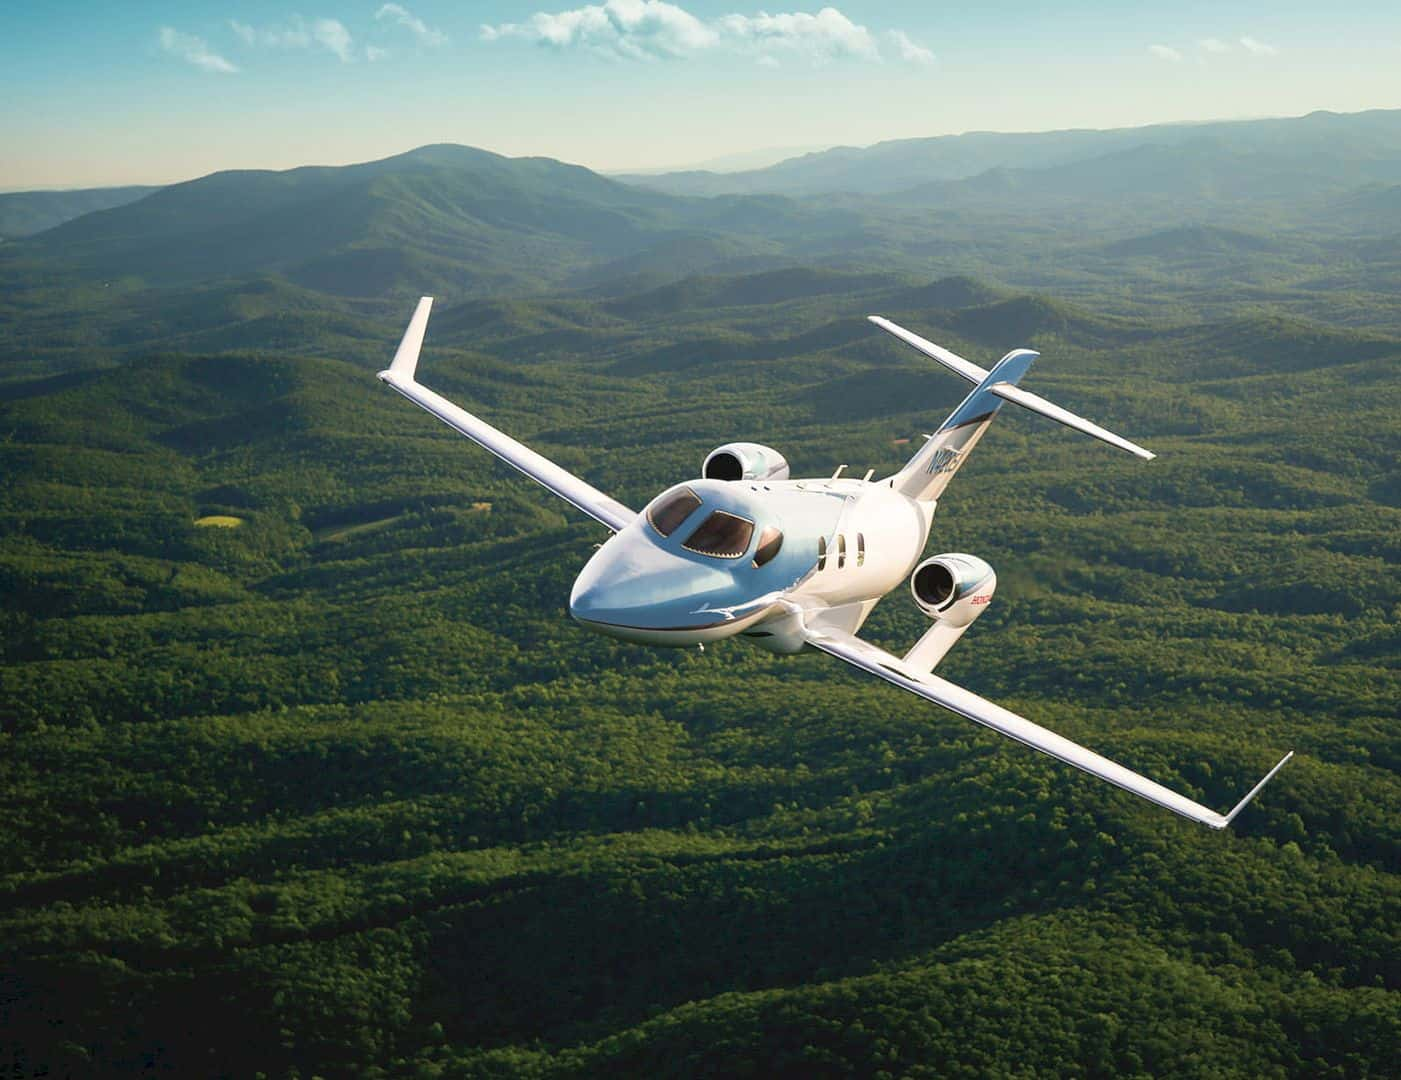 Hondajet Elite 5